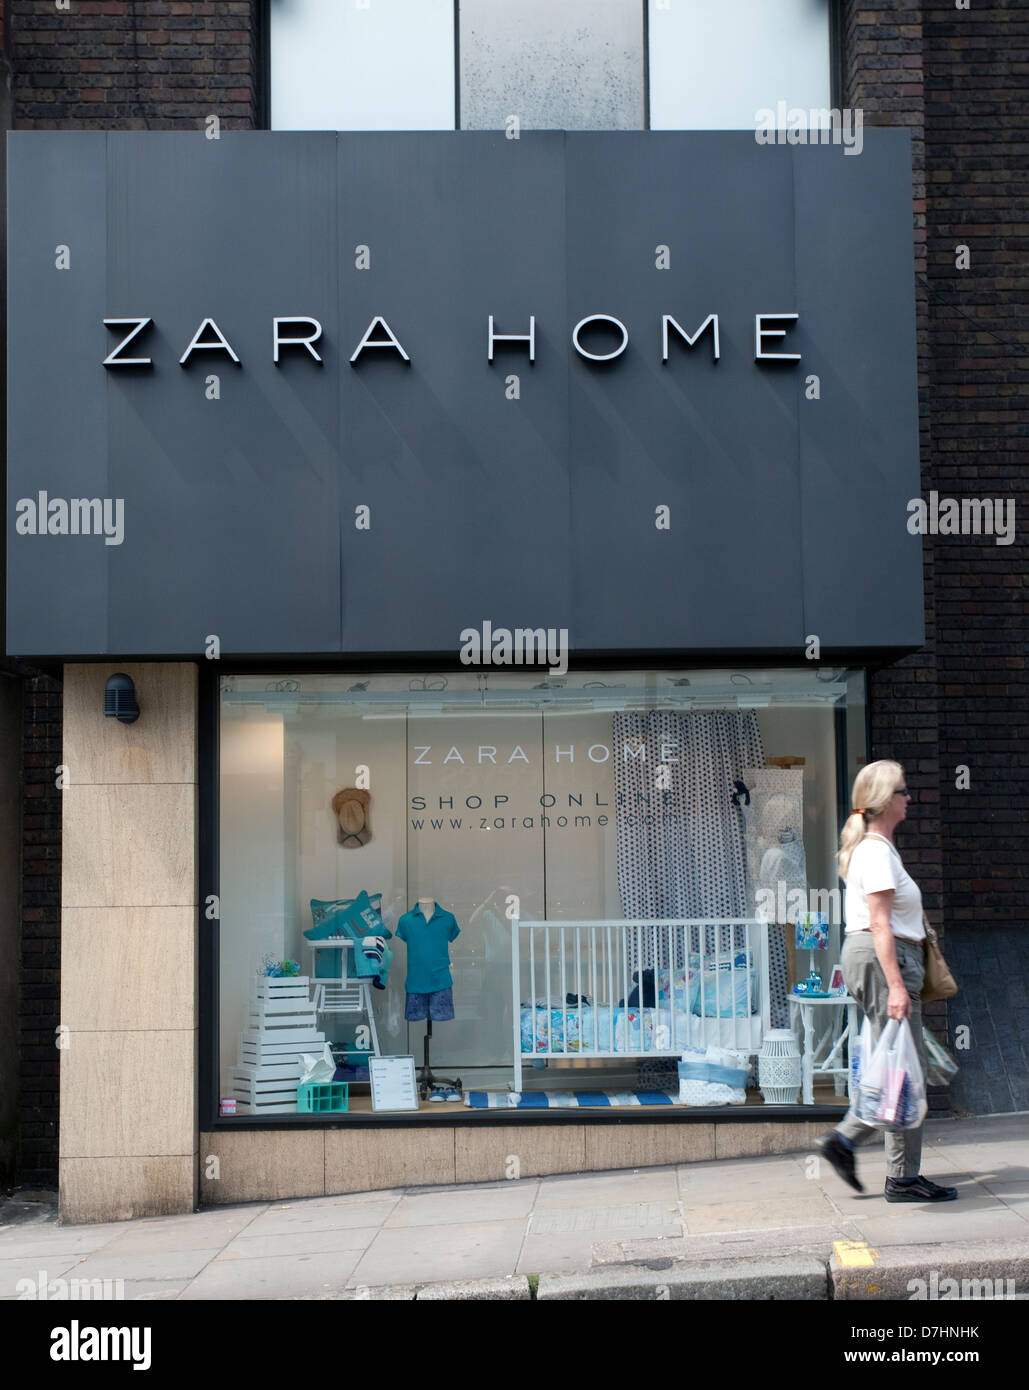 Branch of Zara Home furnishings store in Hampstead, London - Stock Image